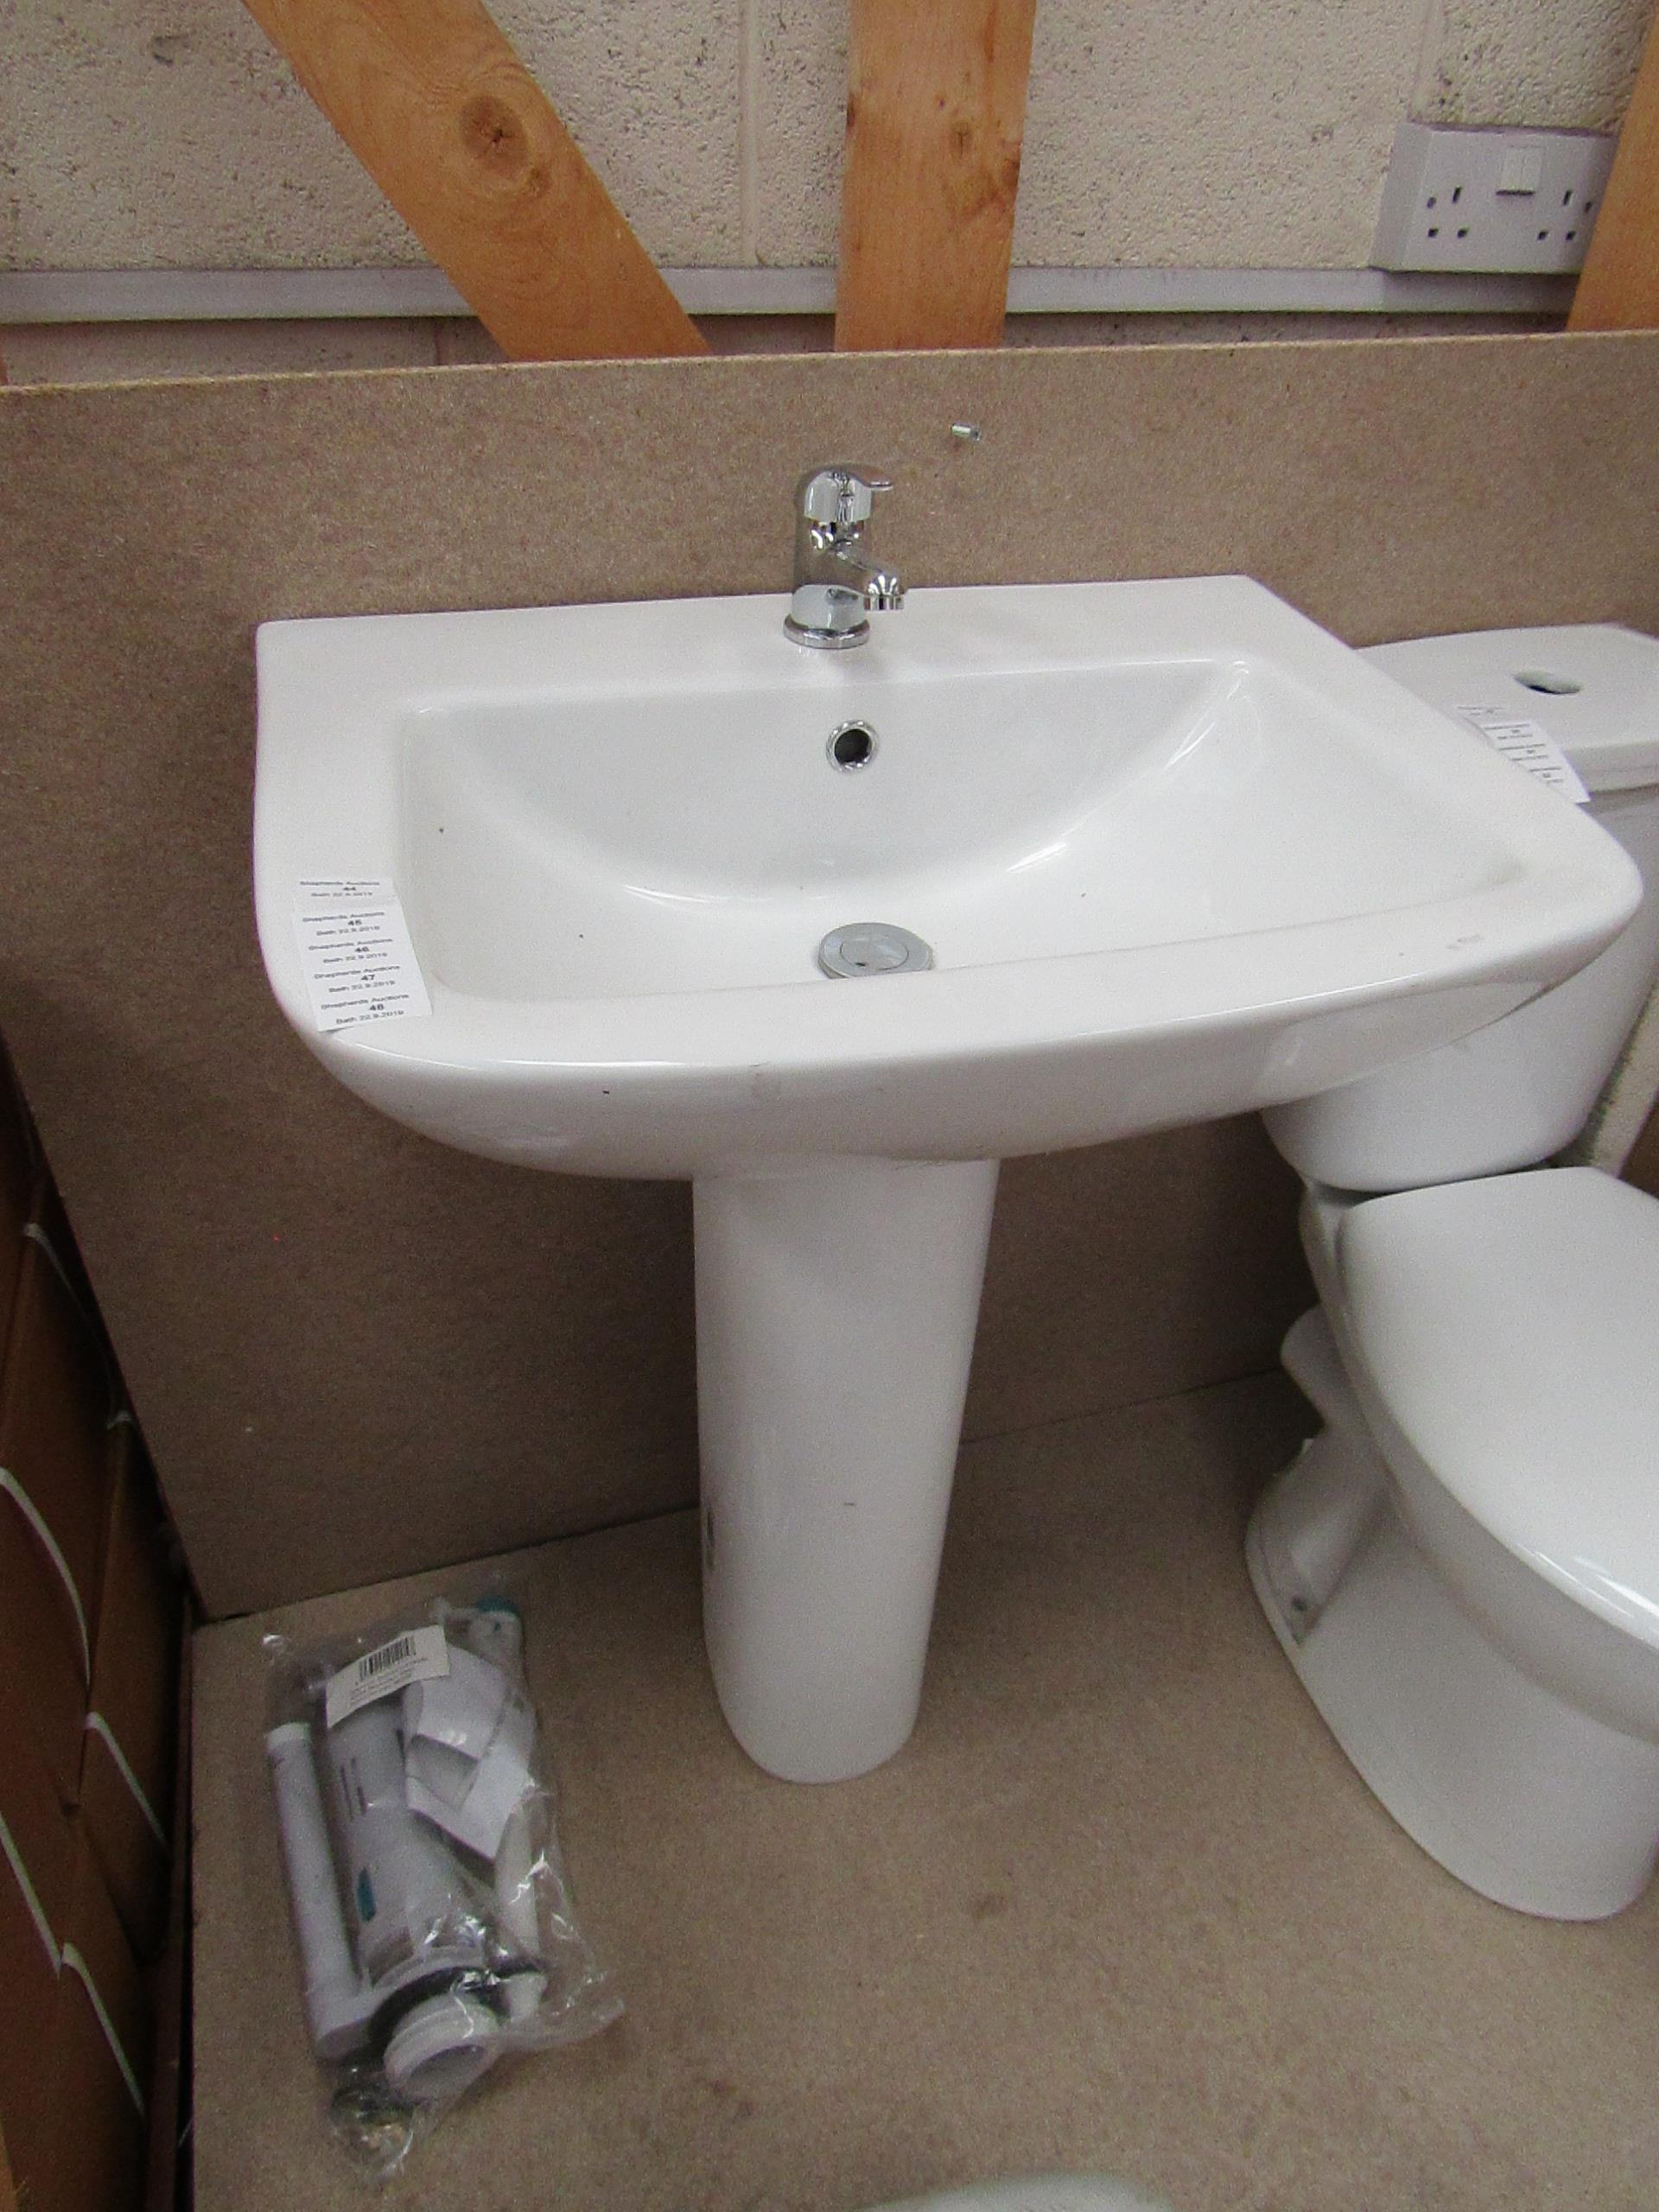 Lot 47 - Unbranded Roca Cloakroom basin set that includes a 620mm 1 tap hole sink with full pedestal and a